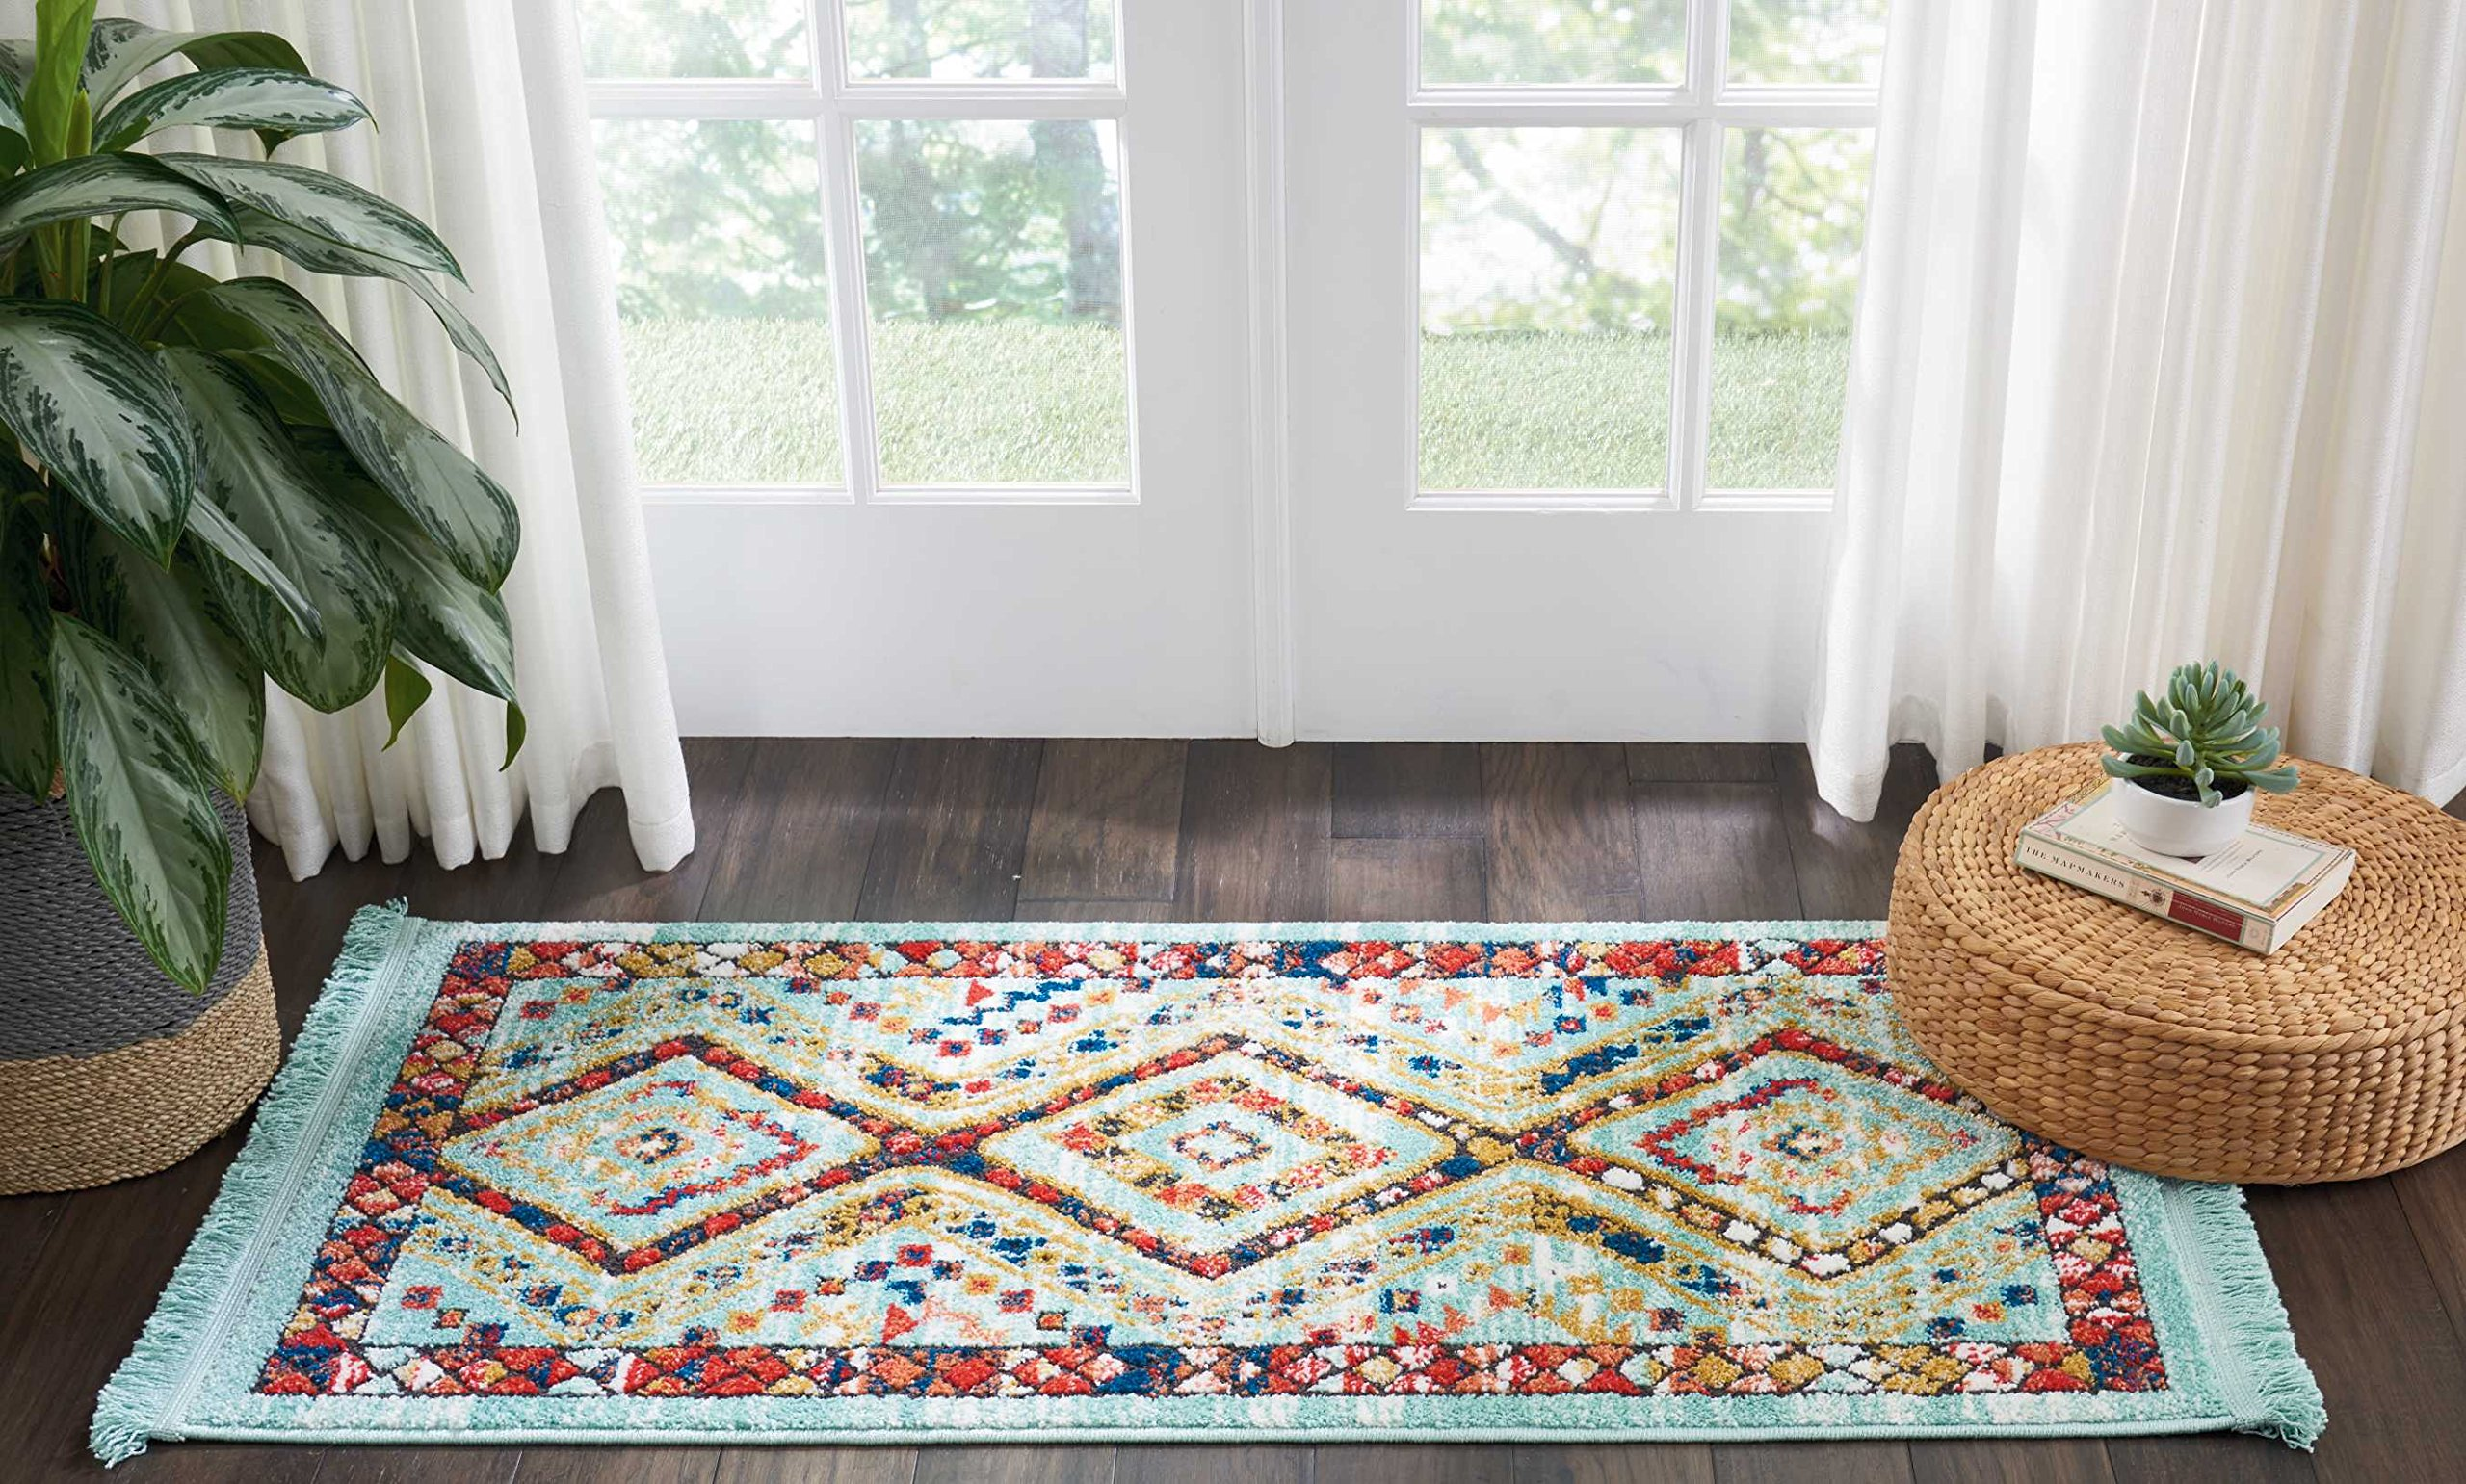 """Nourison Tribal Décor Traditional Colorful Aqua Area Rug 2 Feet 2 Inches by 4 Feet 3 Inches, 2'2""""X4'3"""" - Machine Woven Made in Turkey Care: Professional Dry Cleaning - living-room-soft-furnishings, living-room, area-rugs - 91c5K6j7f9L -"""